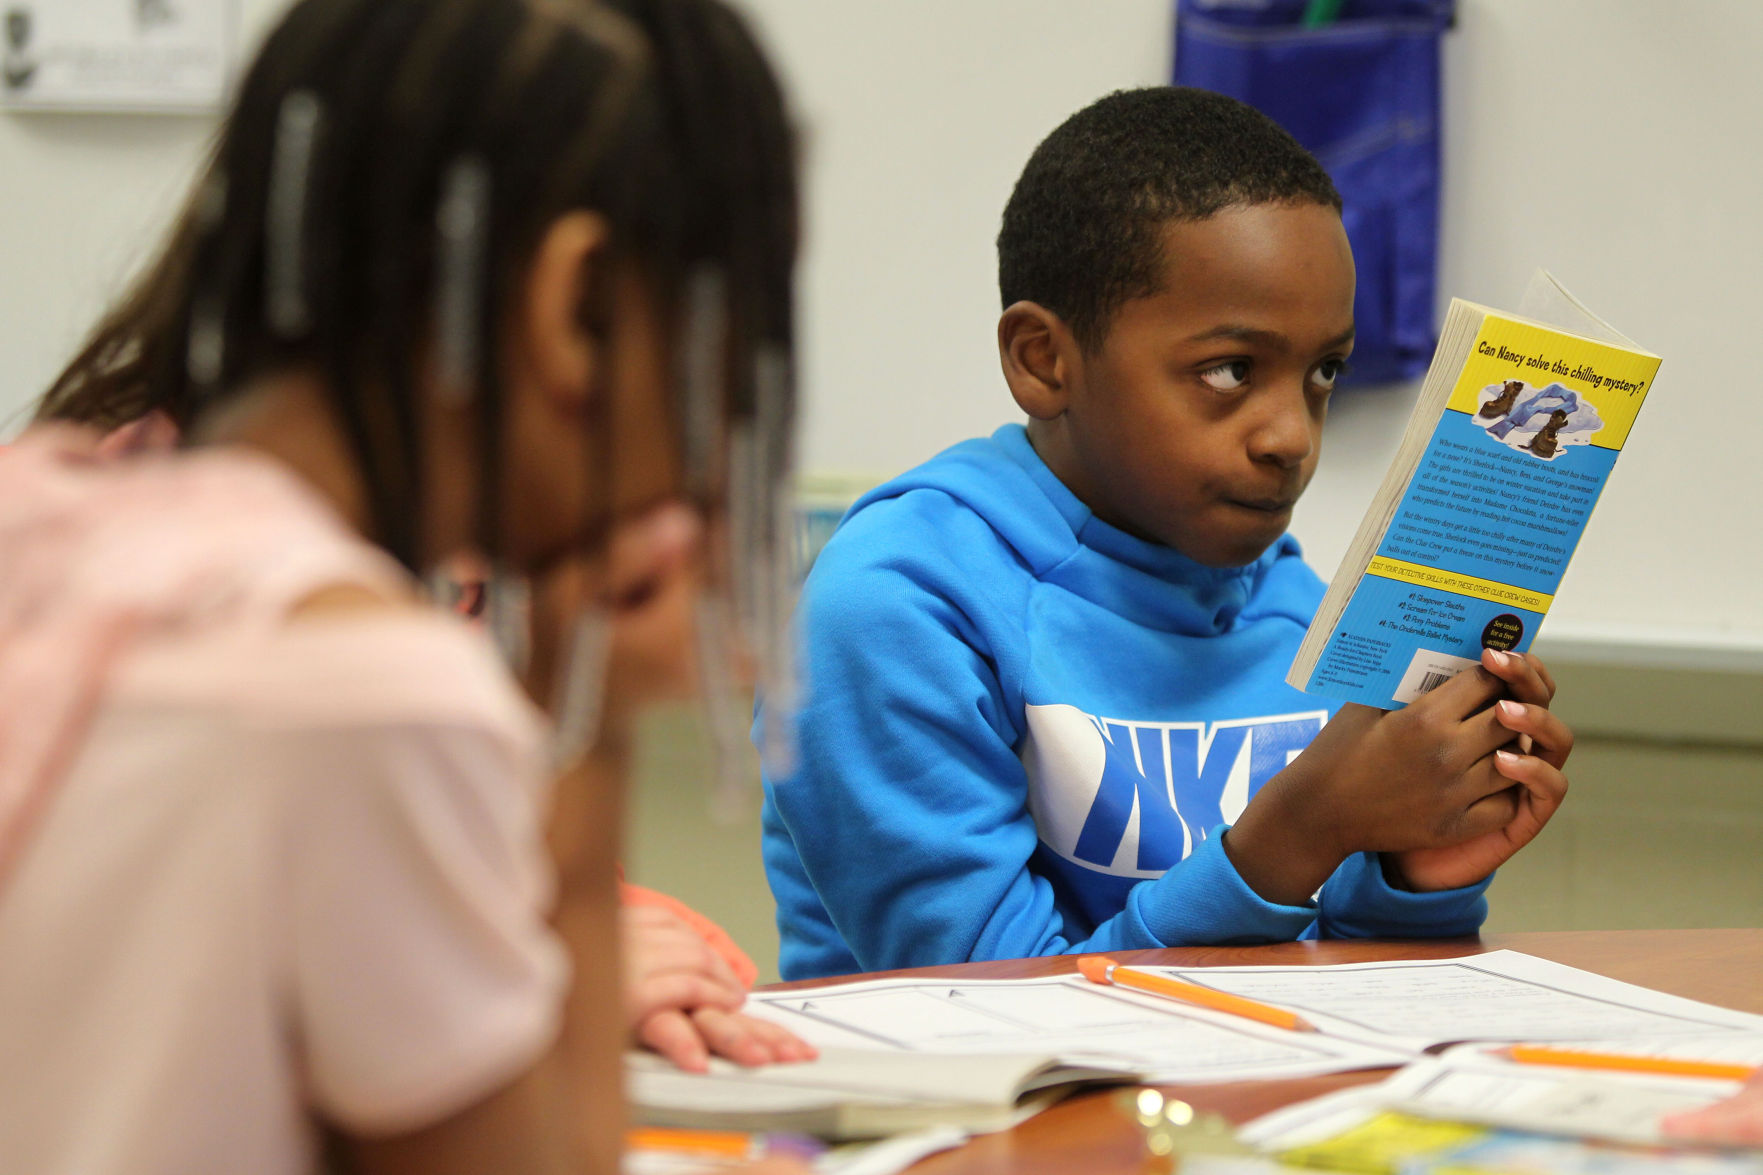 """Caysen Harris, a second-grader at Corinth Elementary School, follows along as his reading group reads """"Nancy Drew and The Clue Crew"""" by Carolyn Keene, with their teacher, Cindy Wilbanks.   Adam Robison/Northeast Mississippi Daily Journal"""